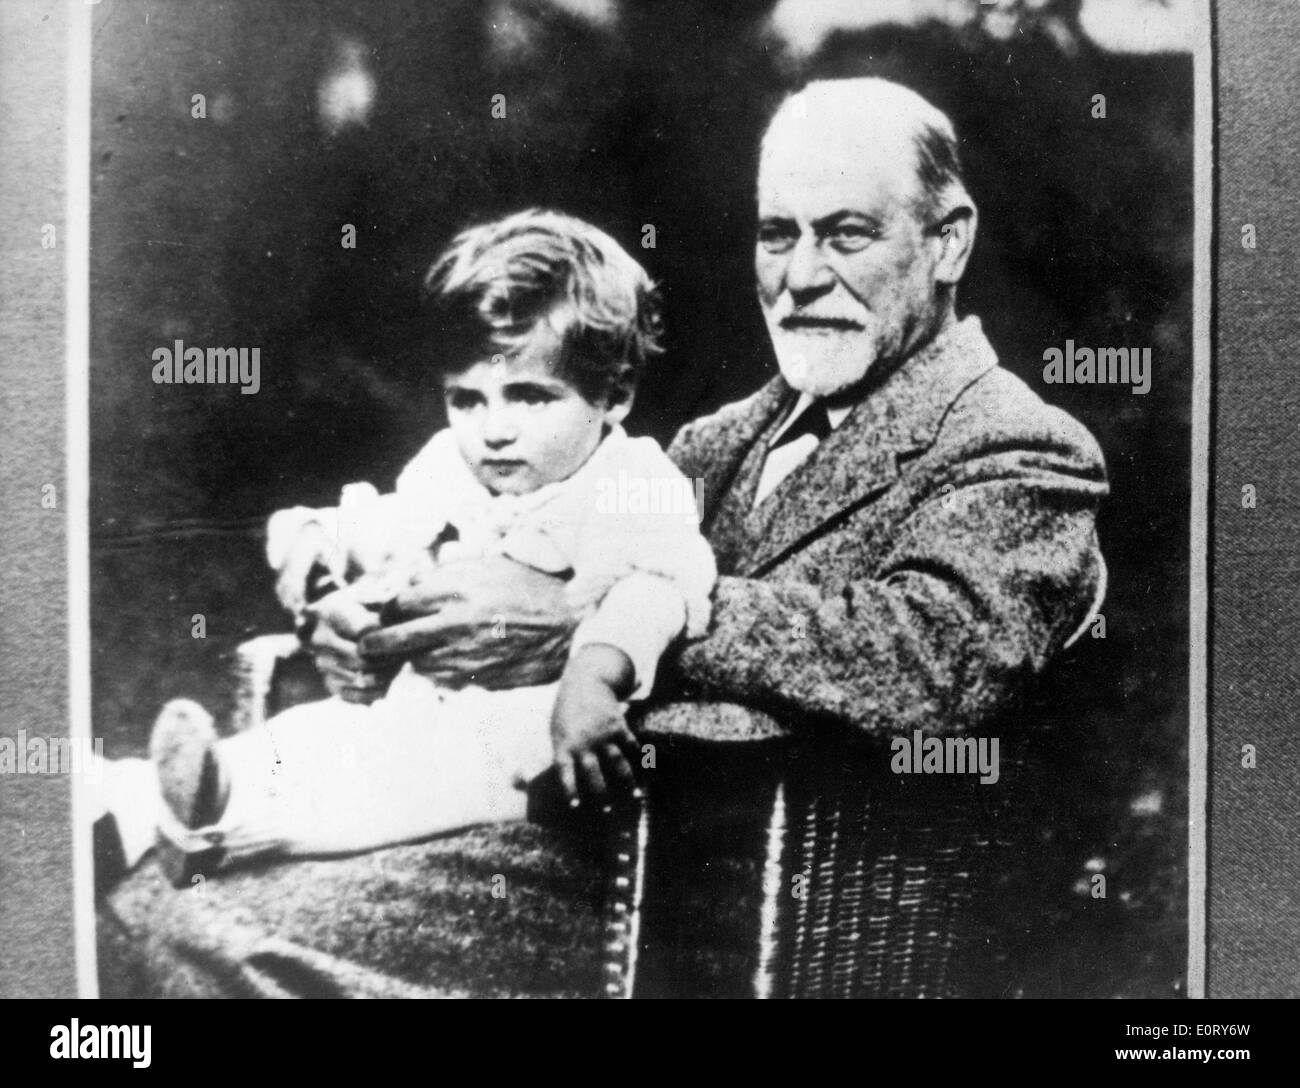 apa style paper on sigmund freud